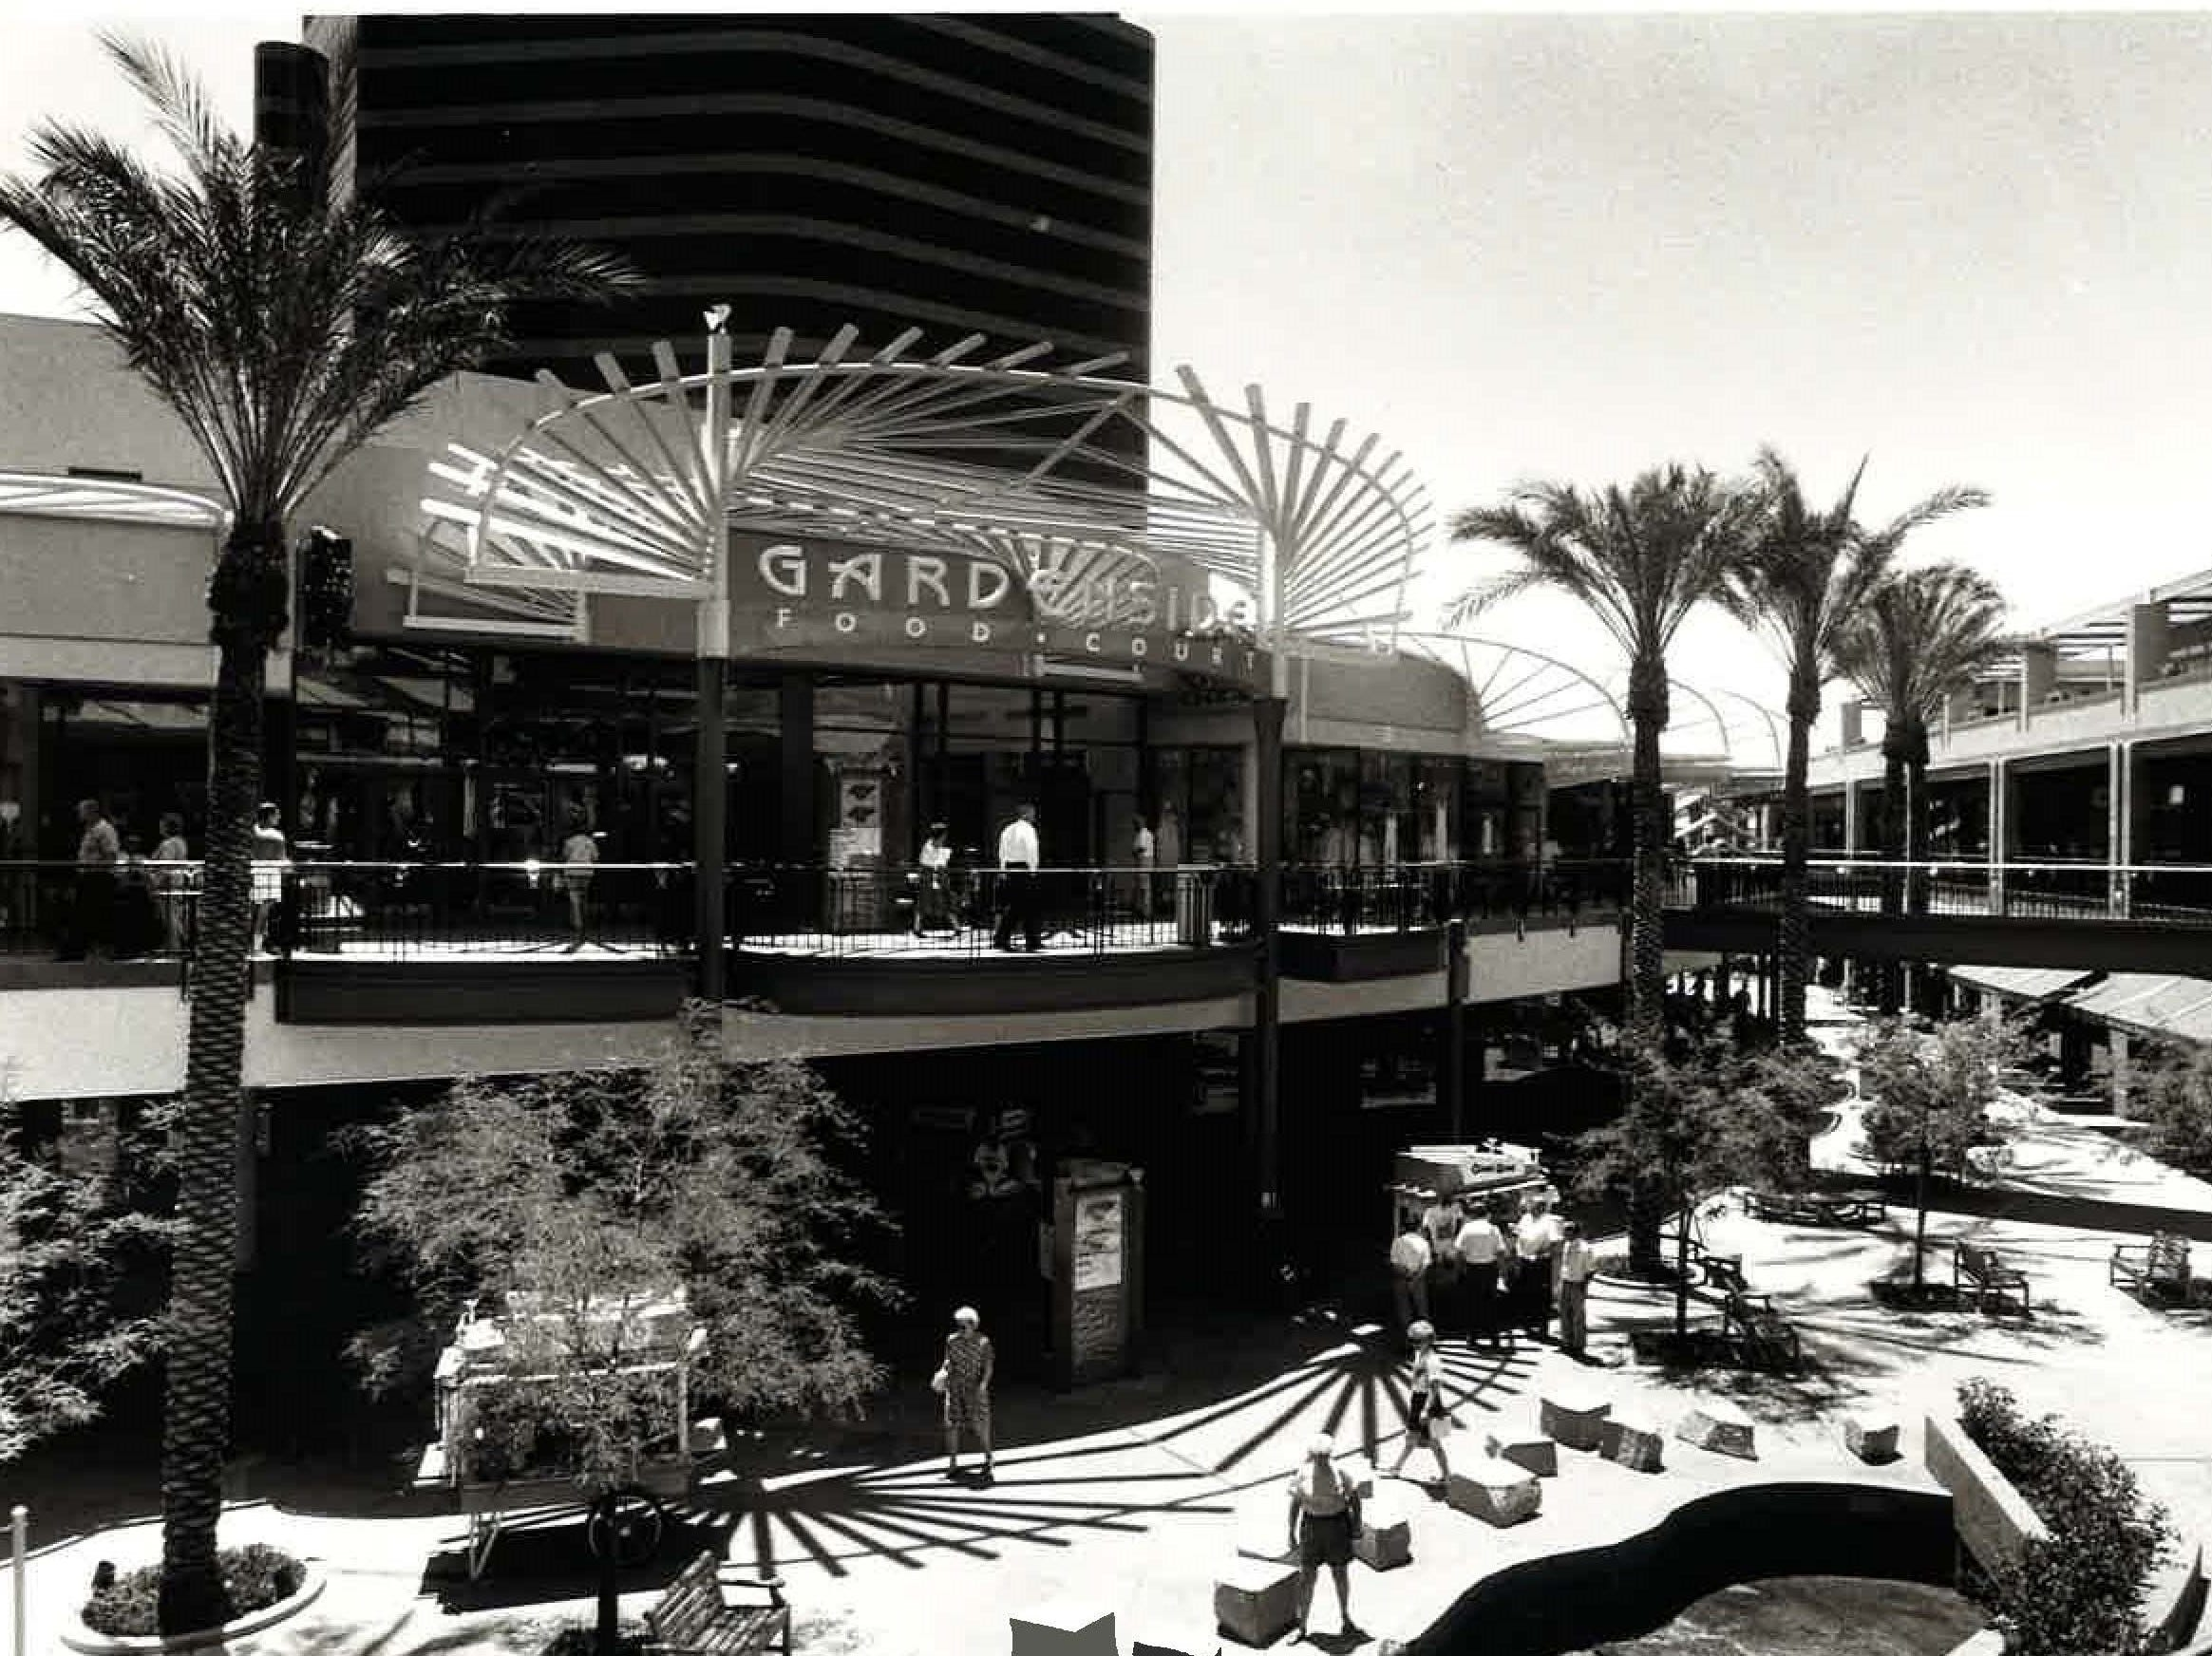 A view of the Arizona Center in June 1991.